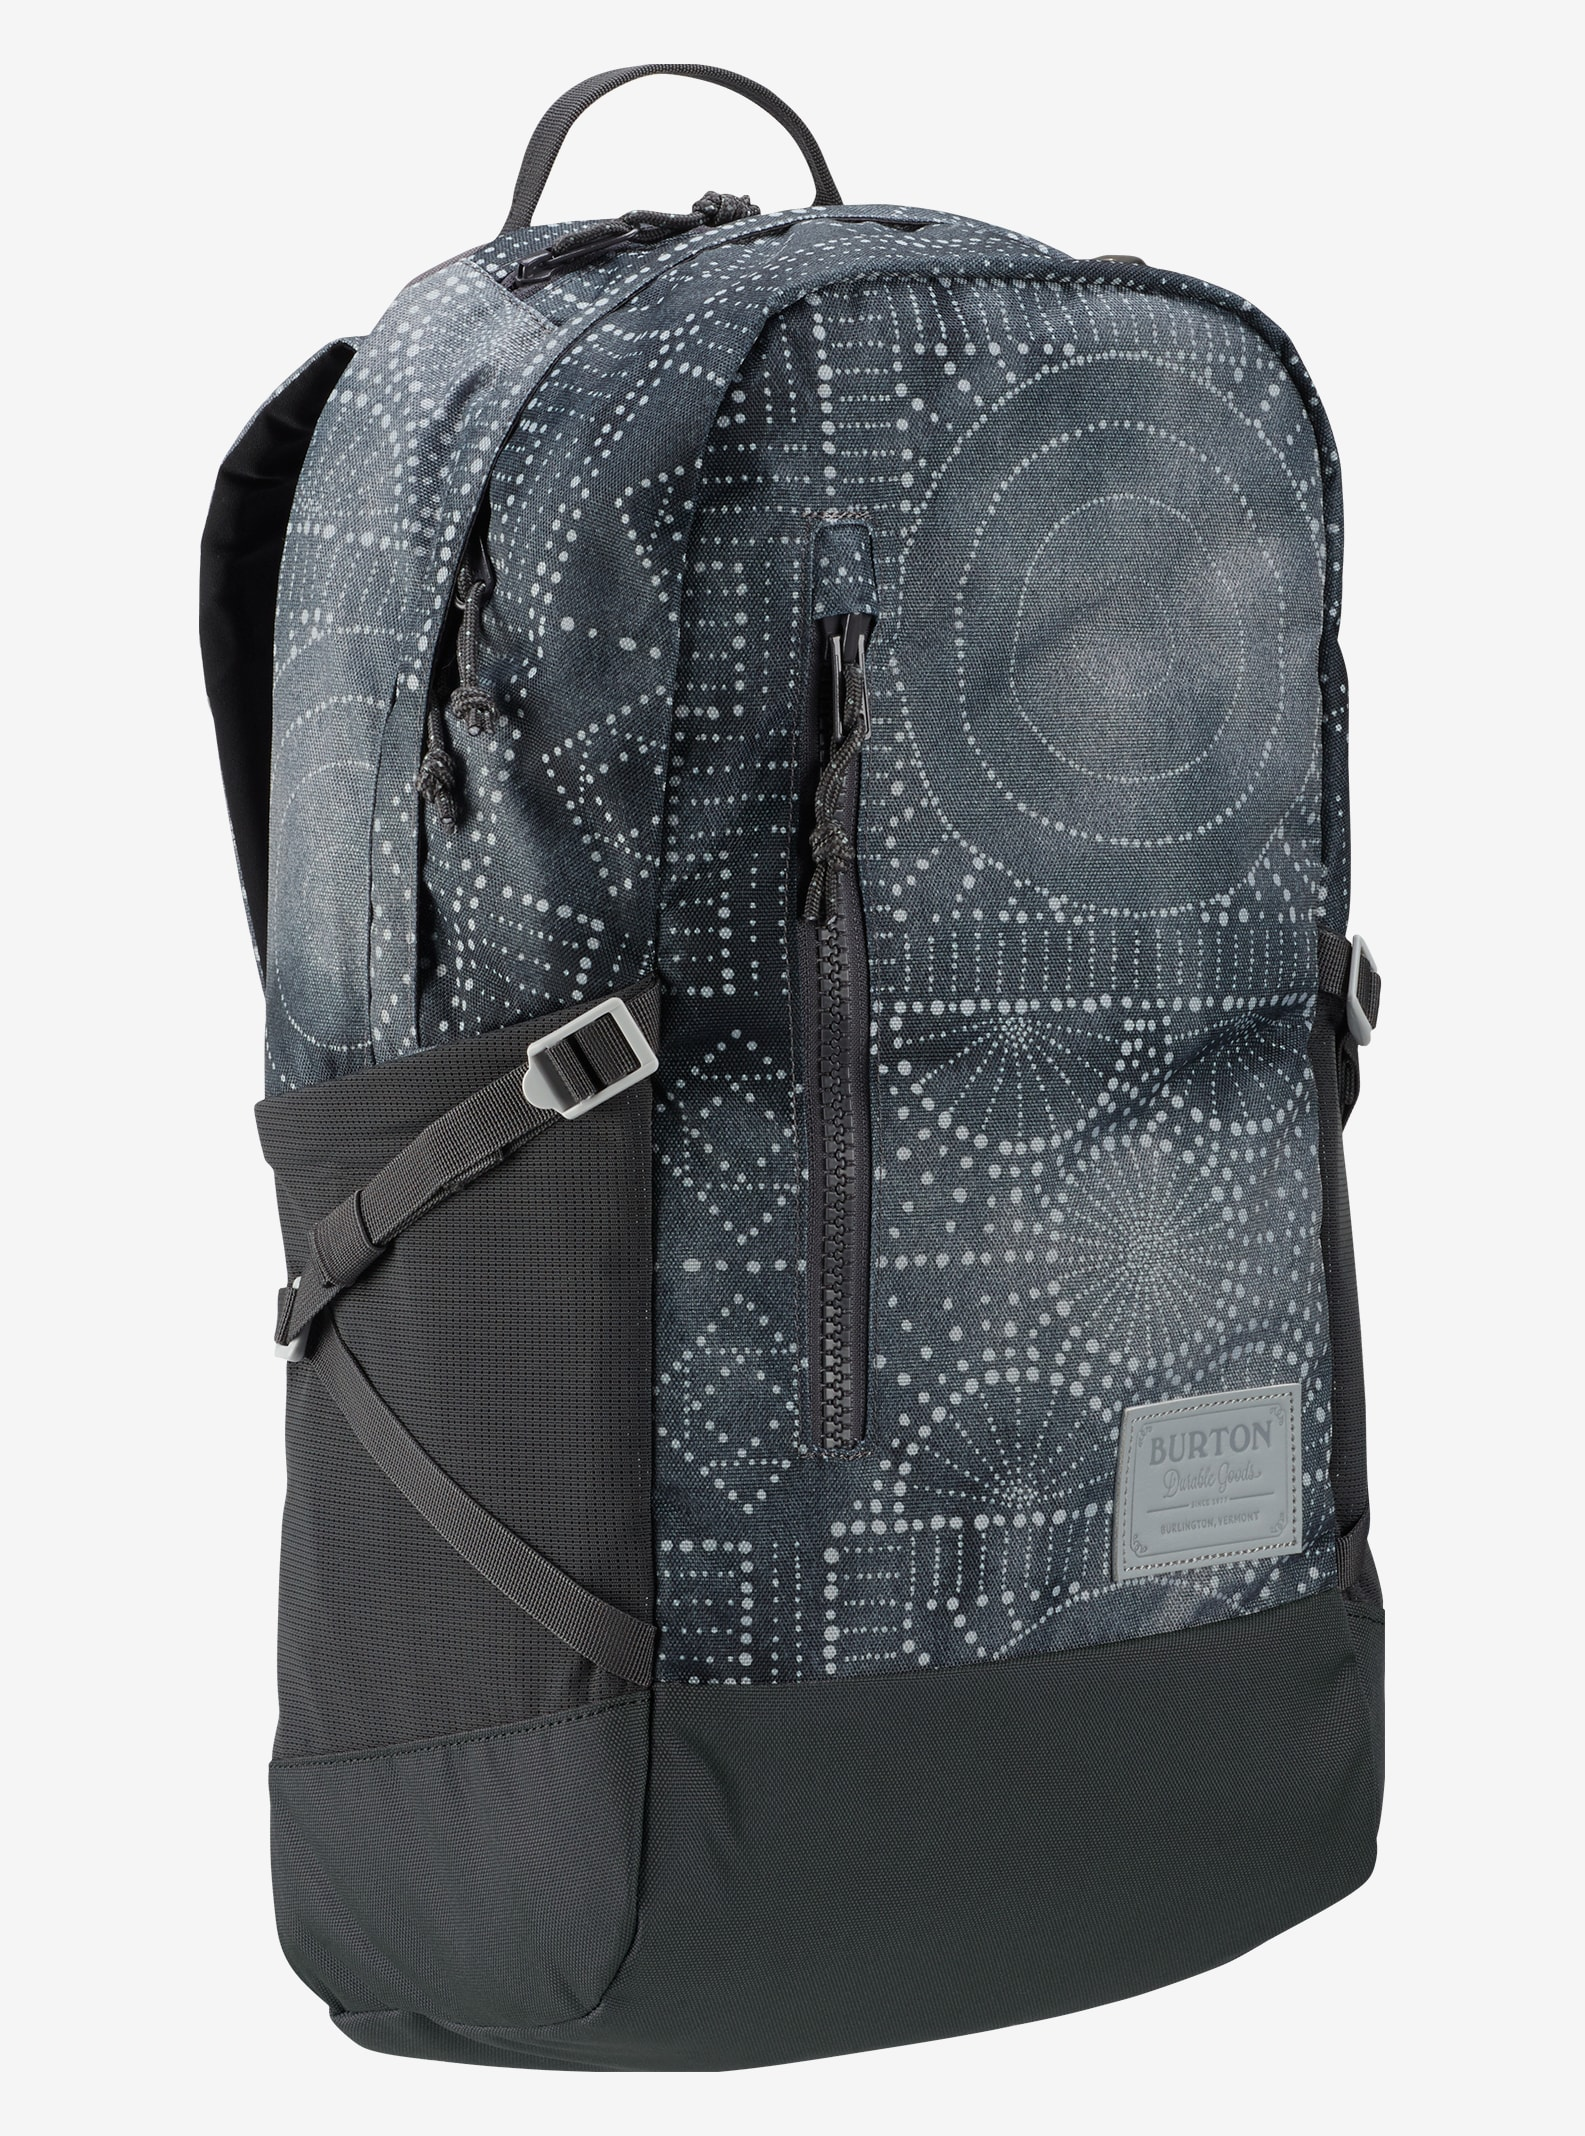 Burton Women's Prospect Backpack shown in Bandotta Print